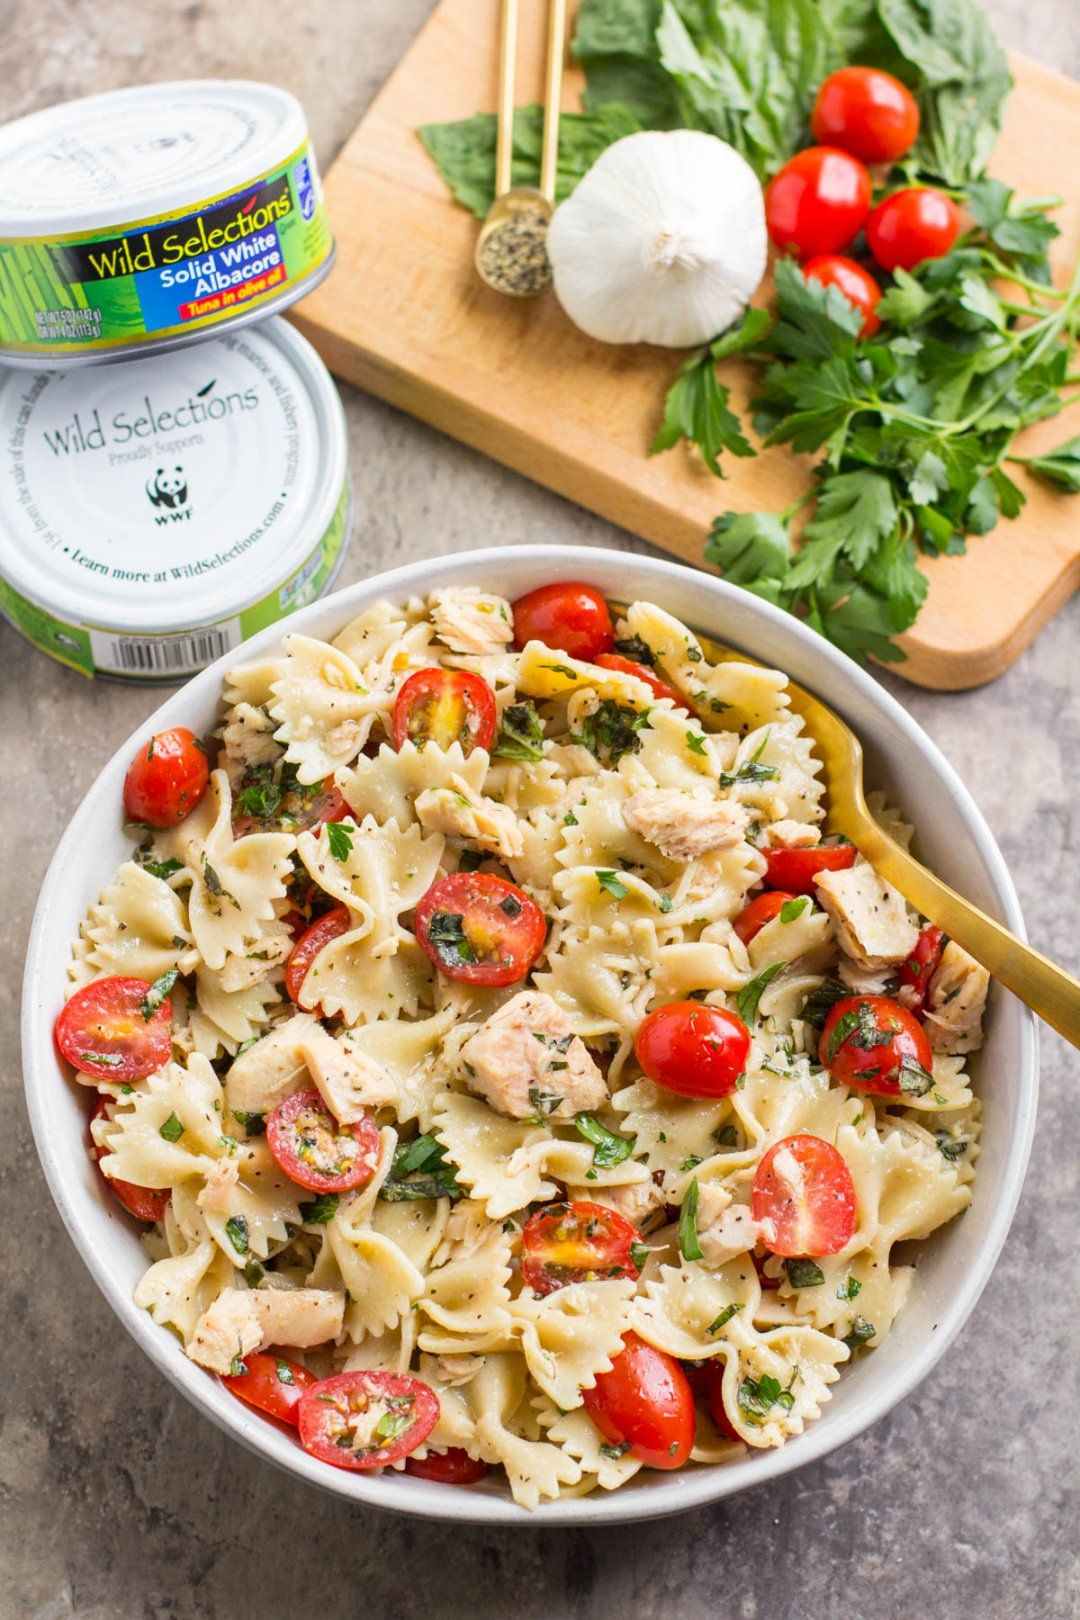 Healthy Tuna Pasta Salad Recipe Tuna Salad Pasta Salad